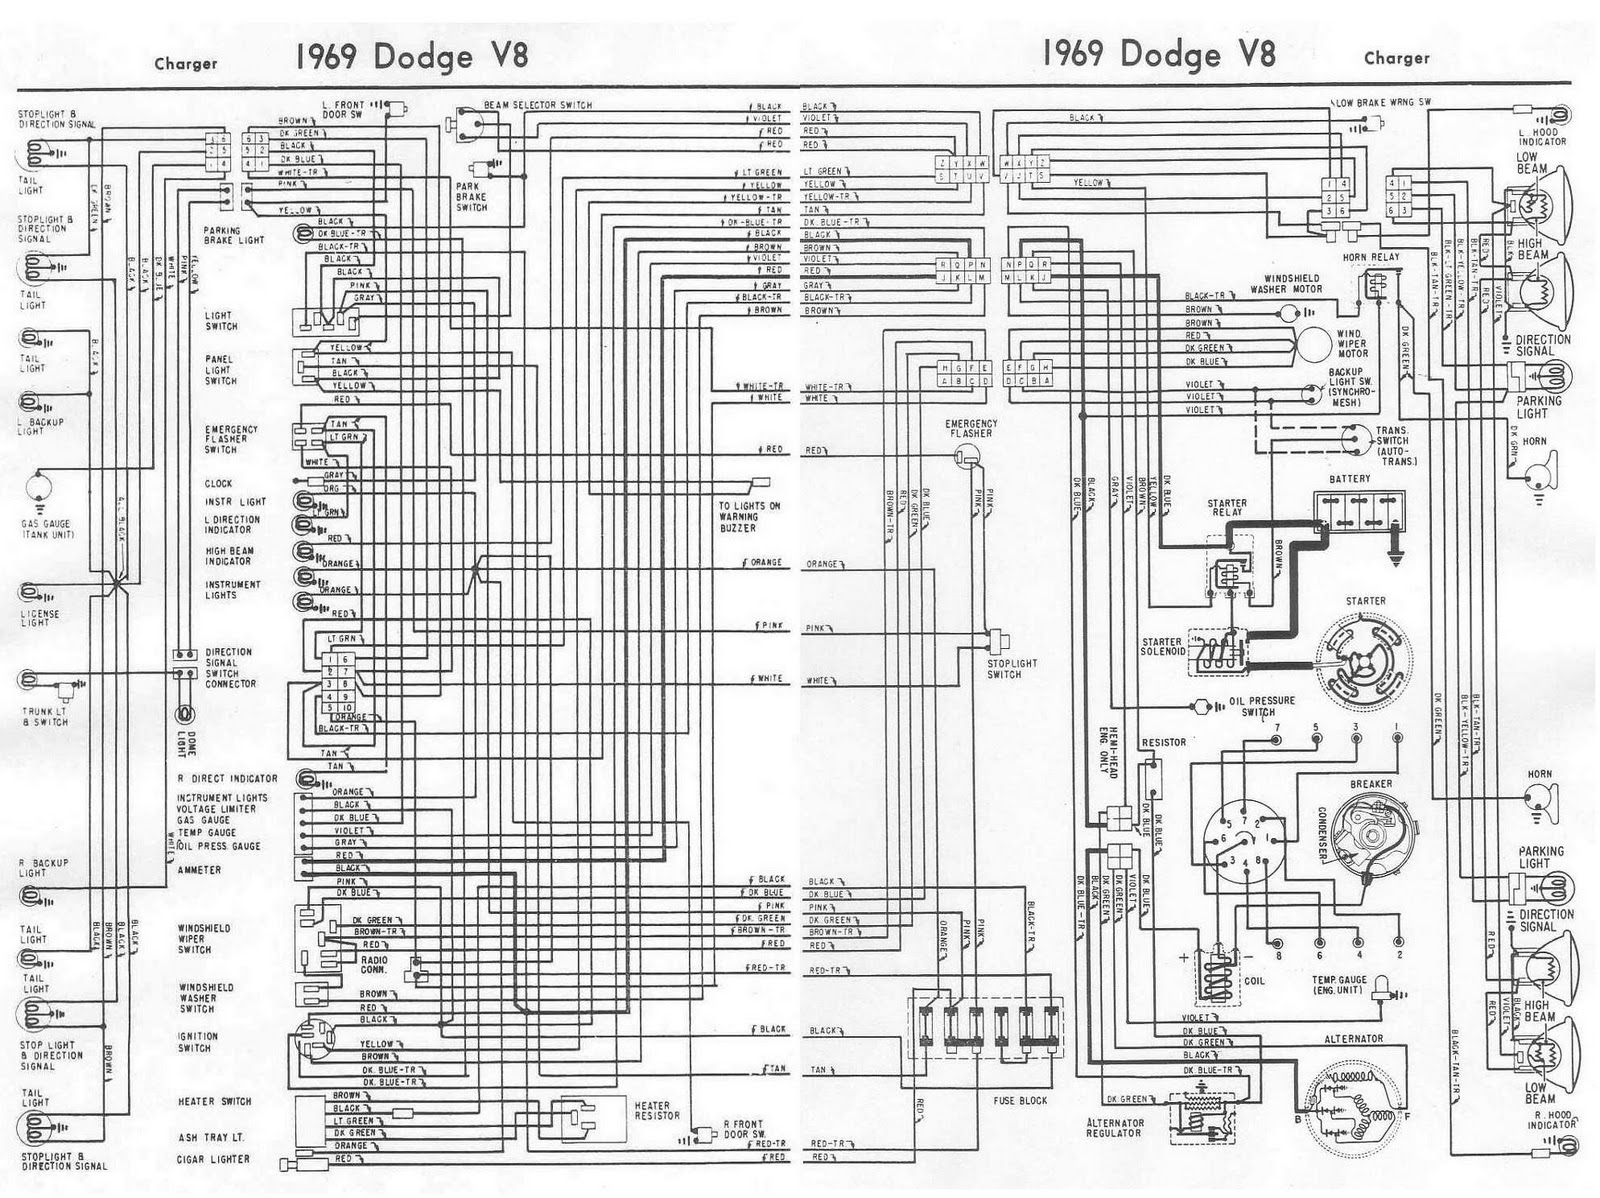 Dodge Ram Trailer Plug Wiring Diagram from 4.bp.blogspot.com